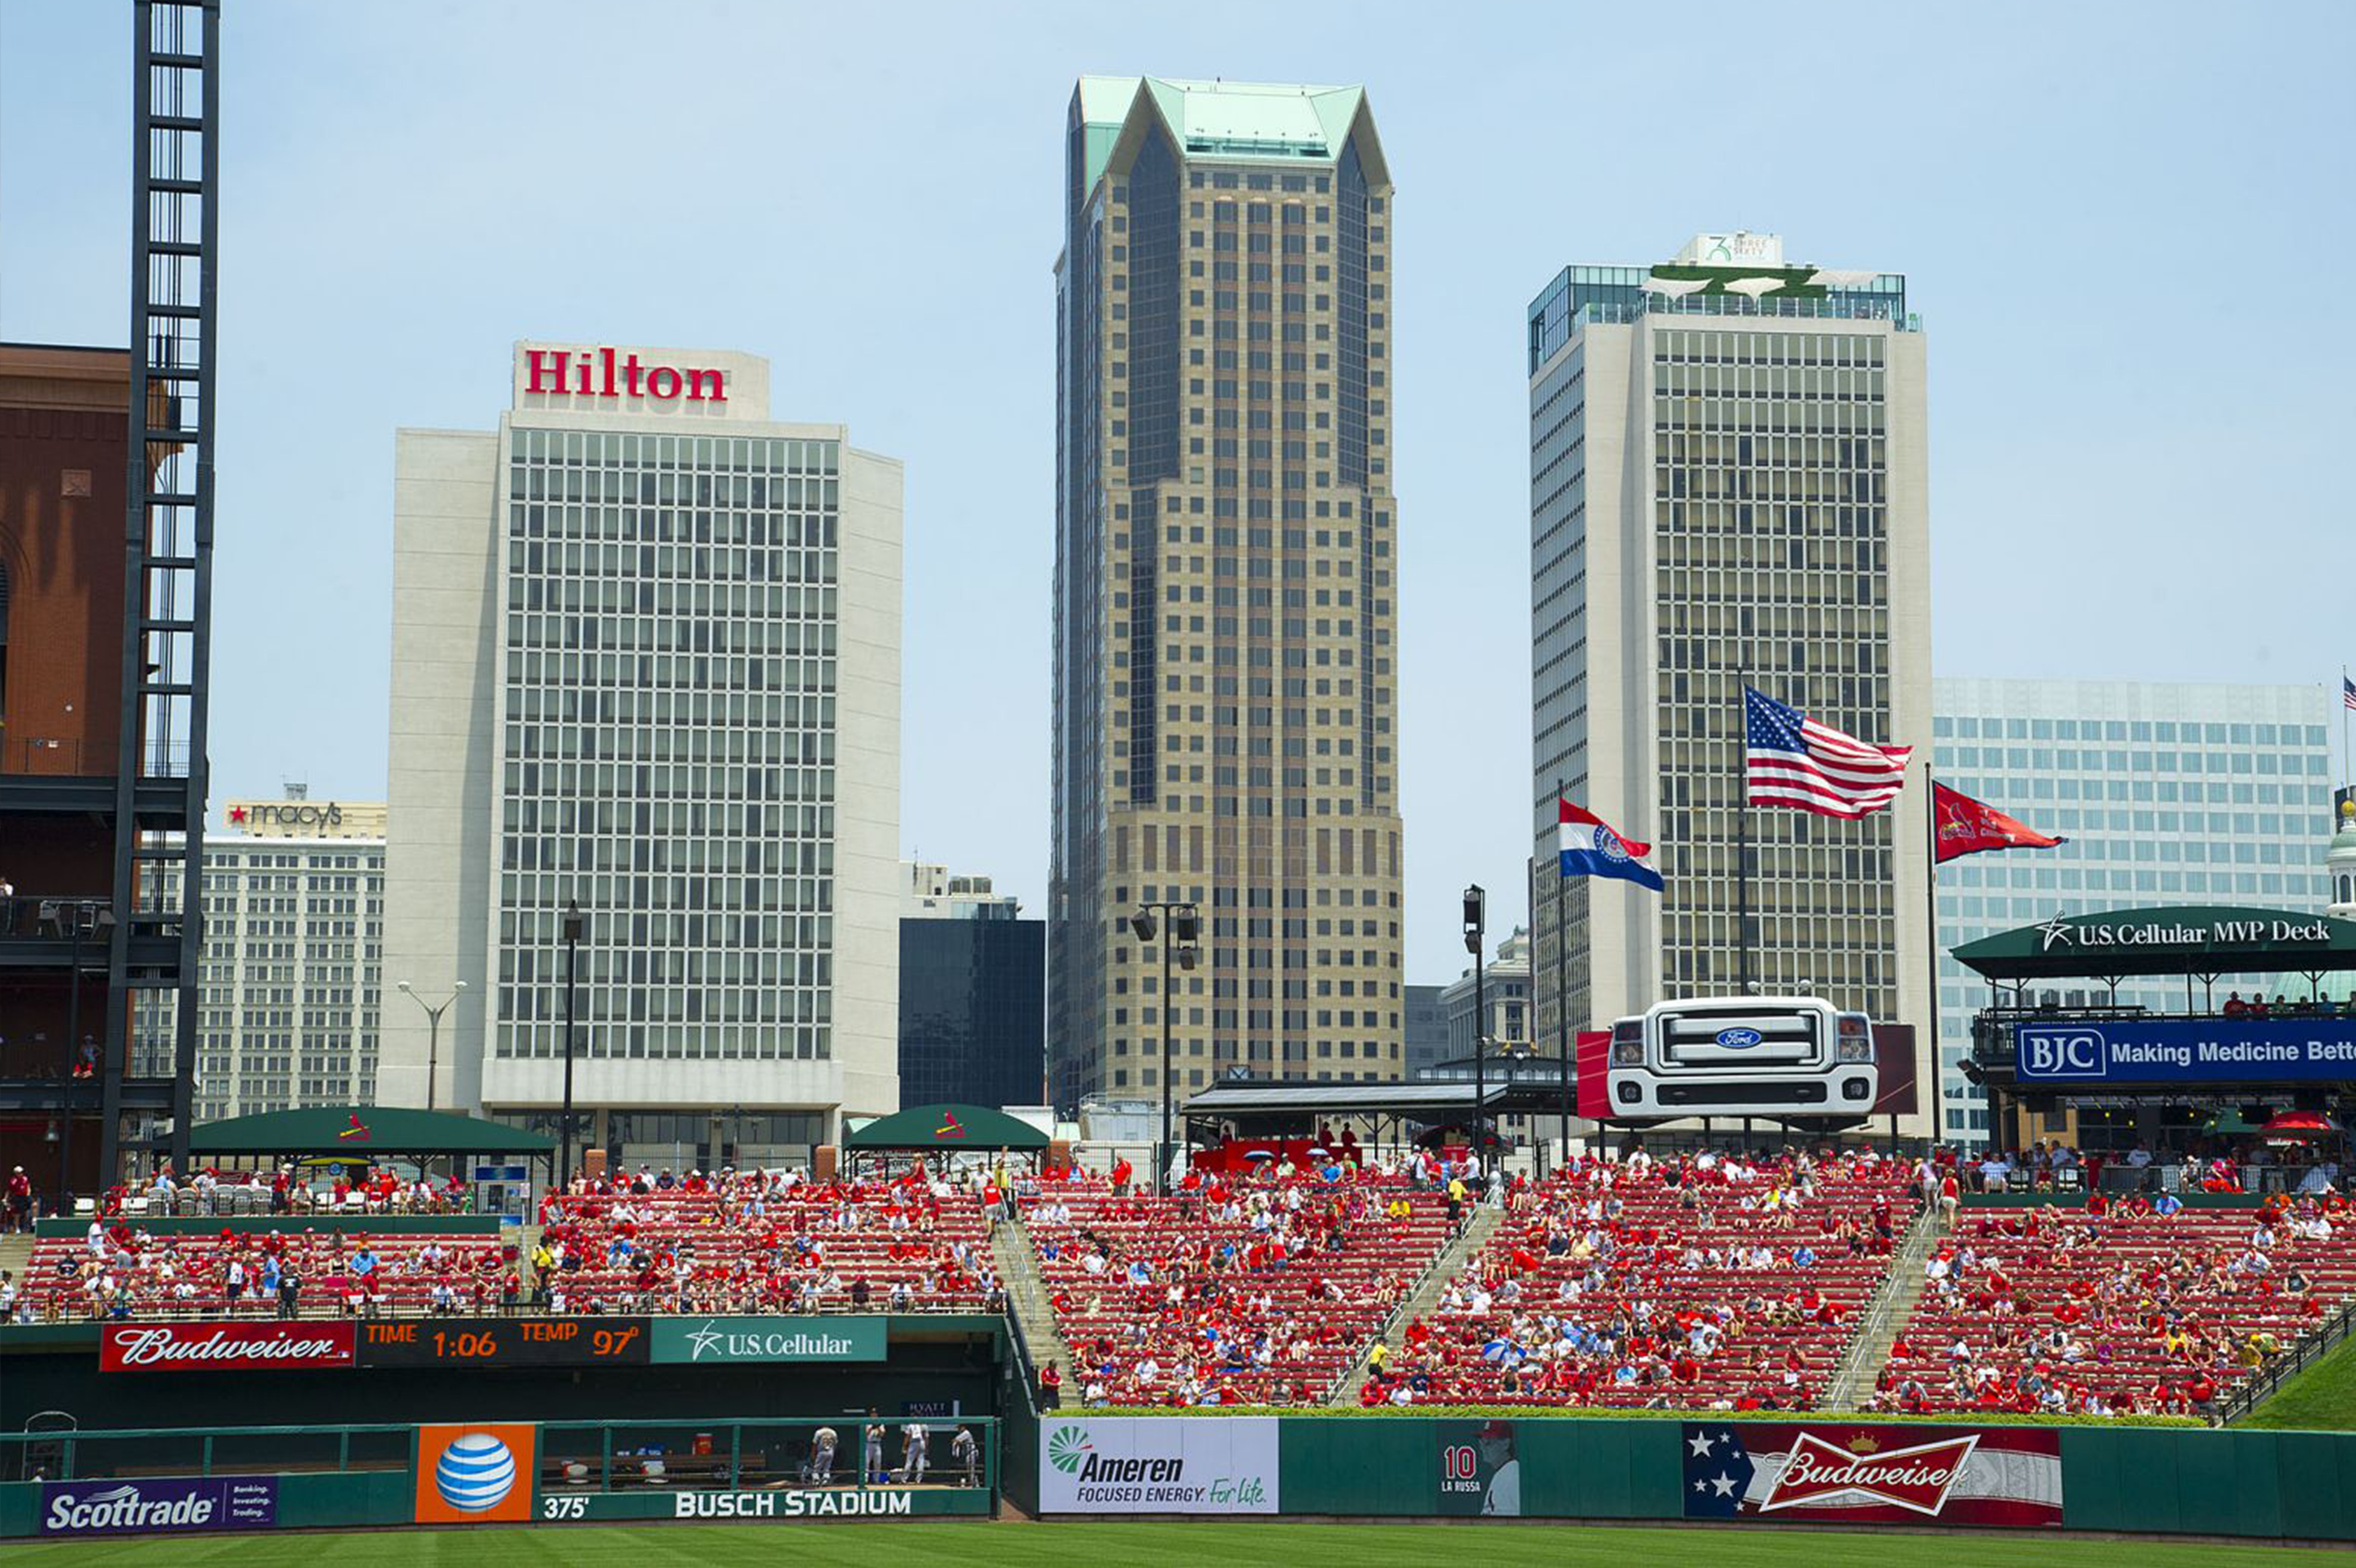 St. Louis at the Ballpark